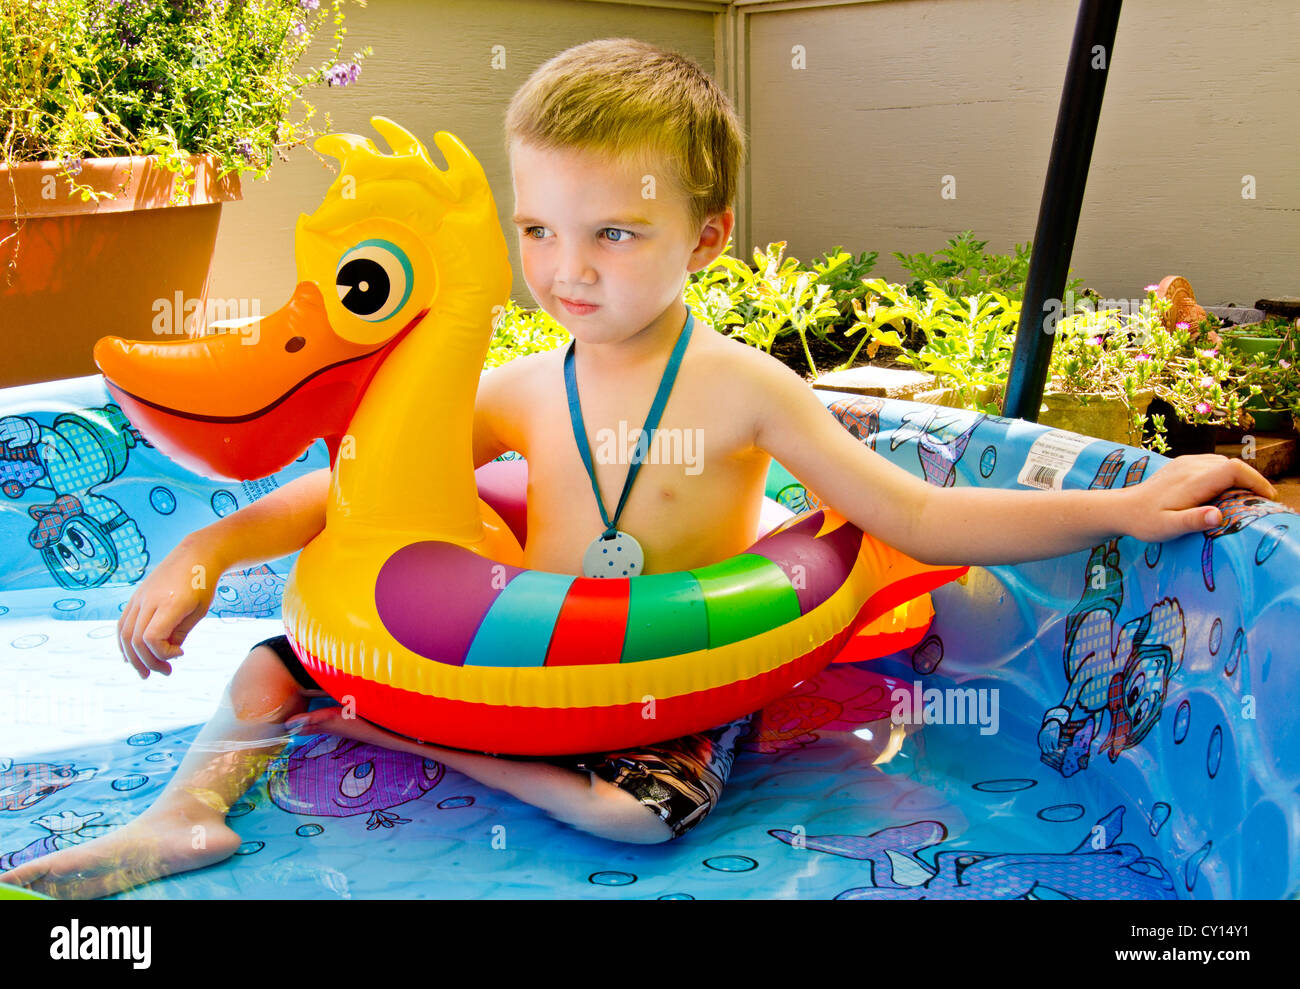 A five-year-old boy with autism sits in a wading pool, protected by a duck floaty. - Stock Image